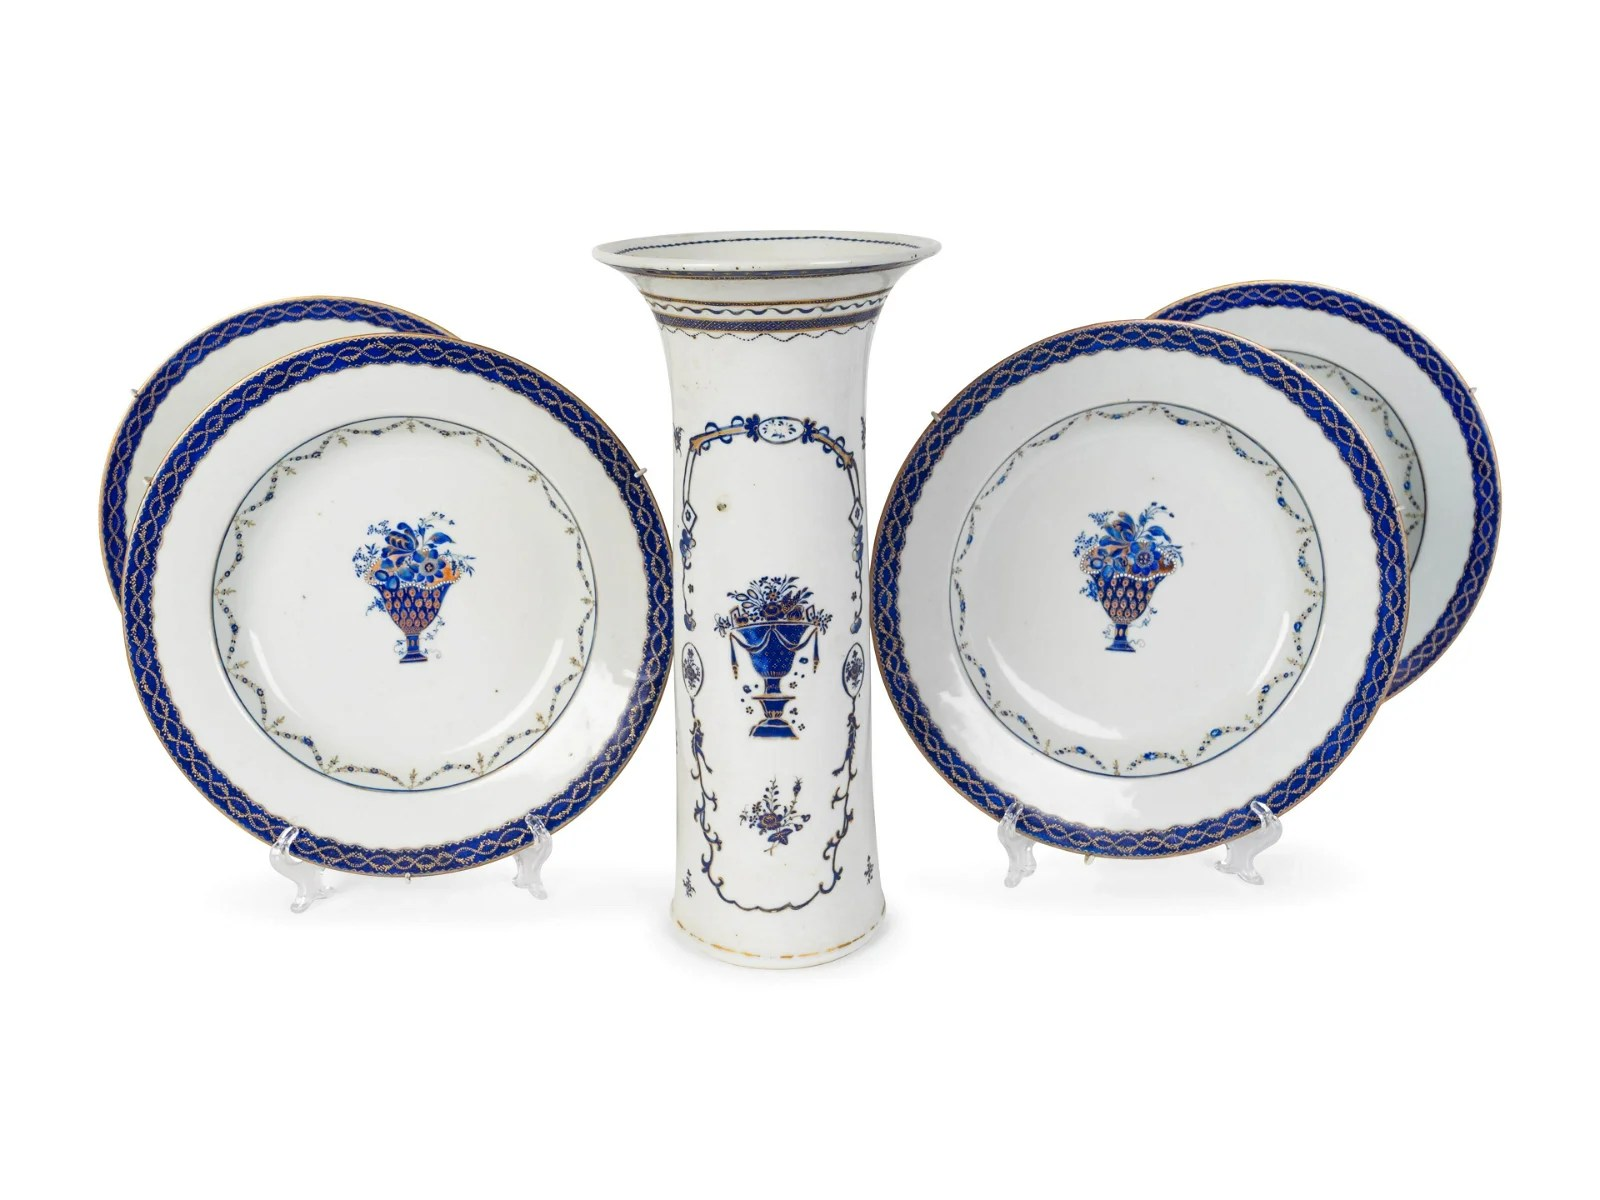 A Set of Four Chinese Export Porcelain Plates and a